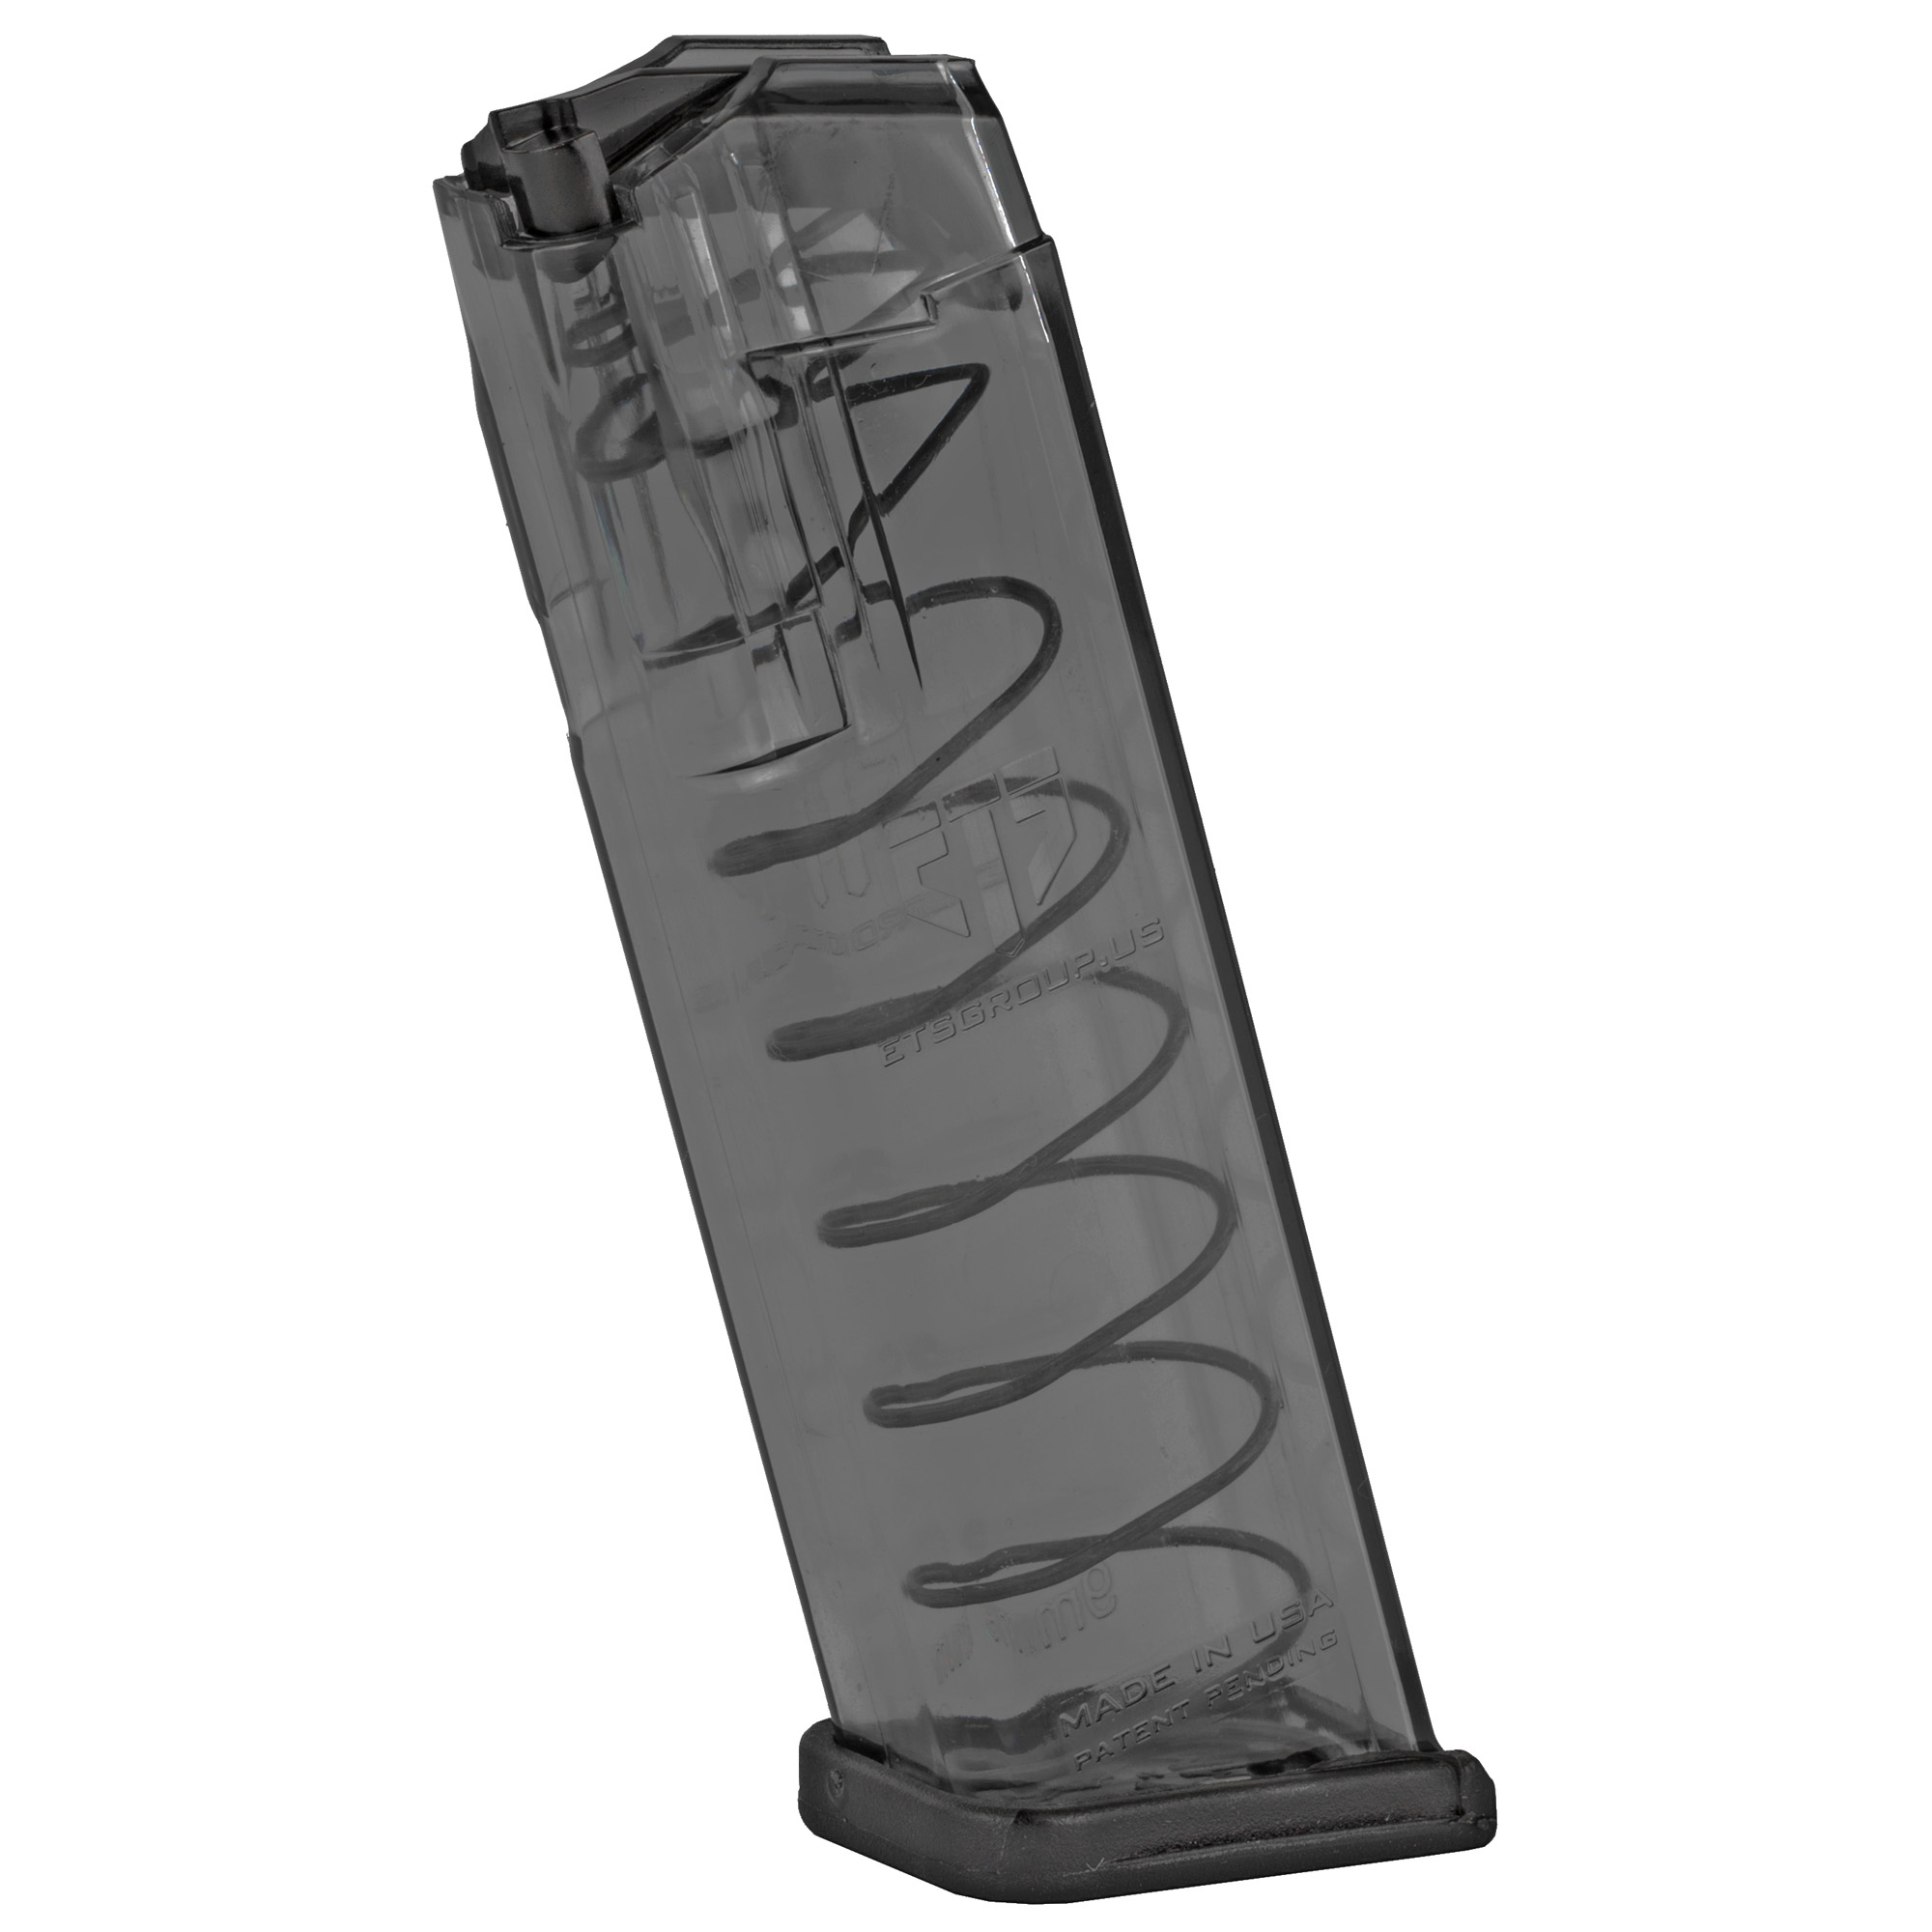 "This ETS magazine features extreme impact resistance"" creep resistant feed lips and a translucent body that allows you to see your ammo count and type. It is compatible with Glock and aftermarket floorplates."